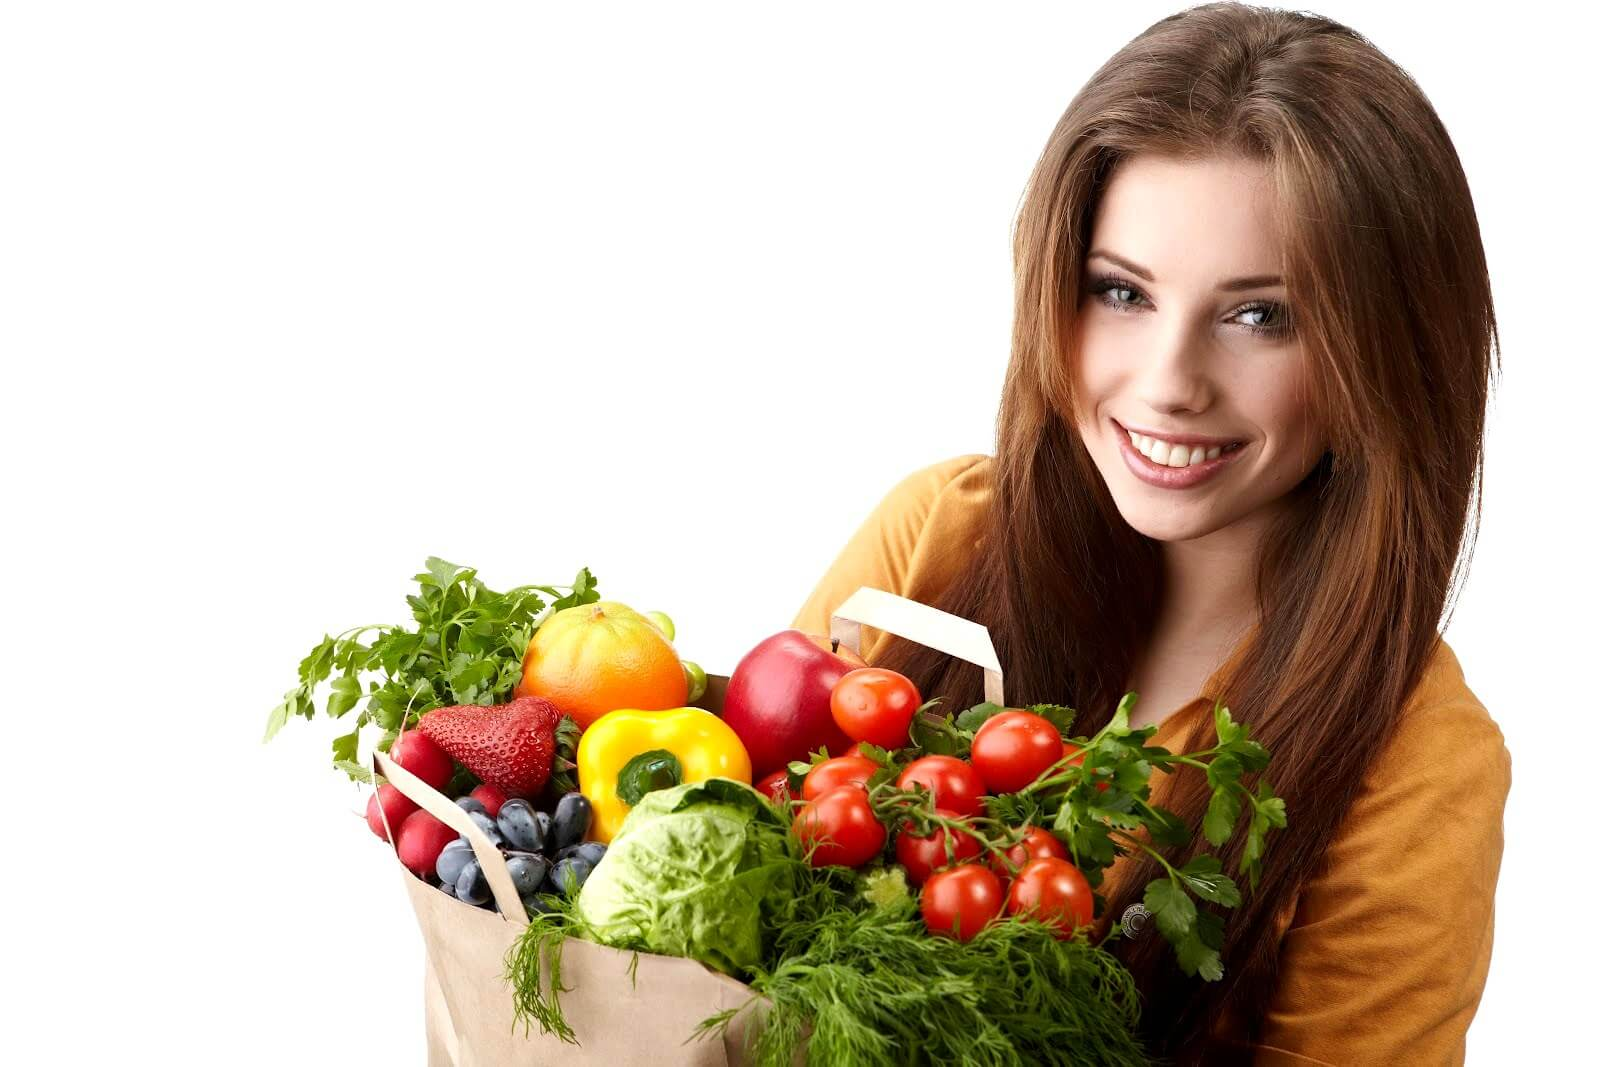 Natural Skin Care - Healthy Eating For Beautyful Skin